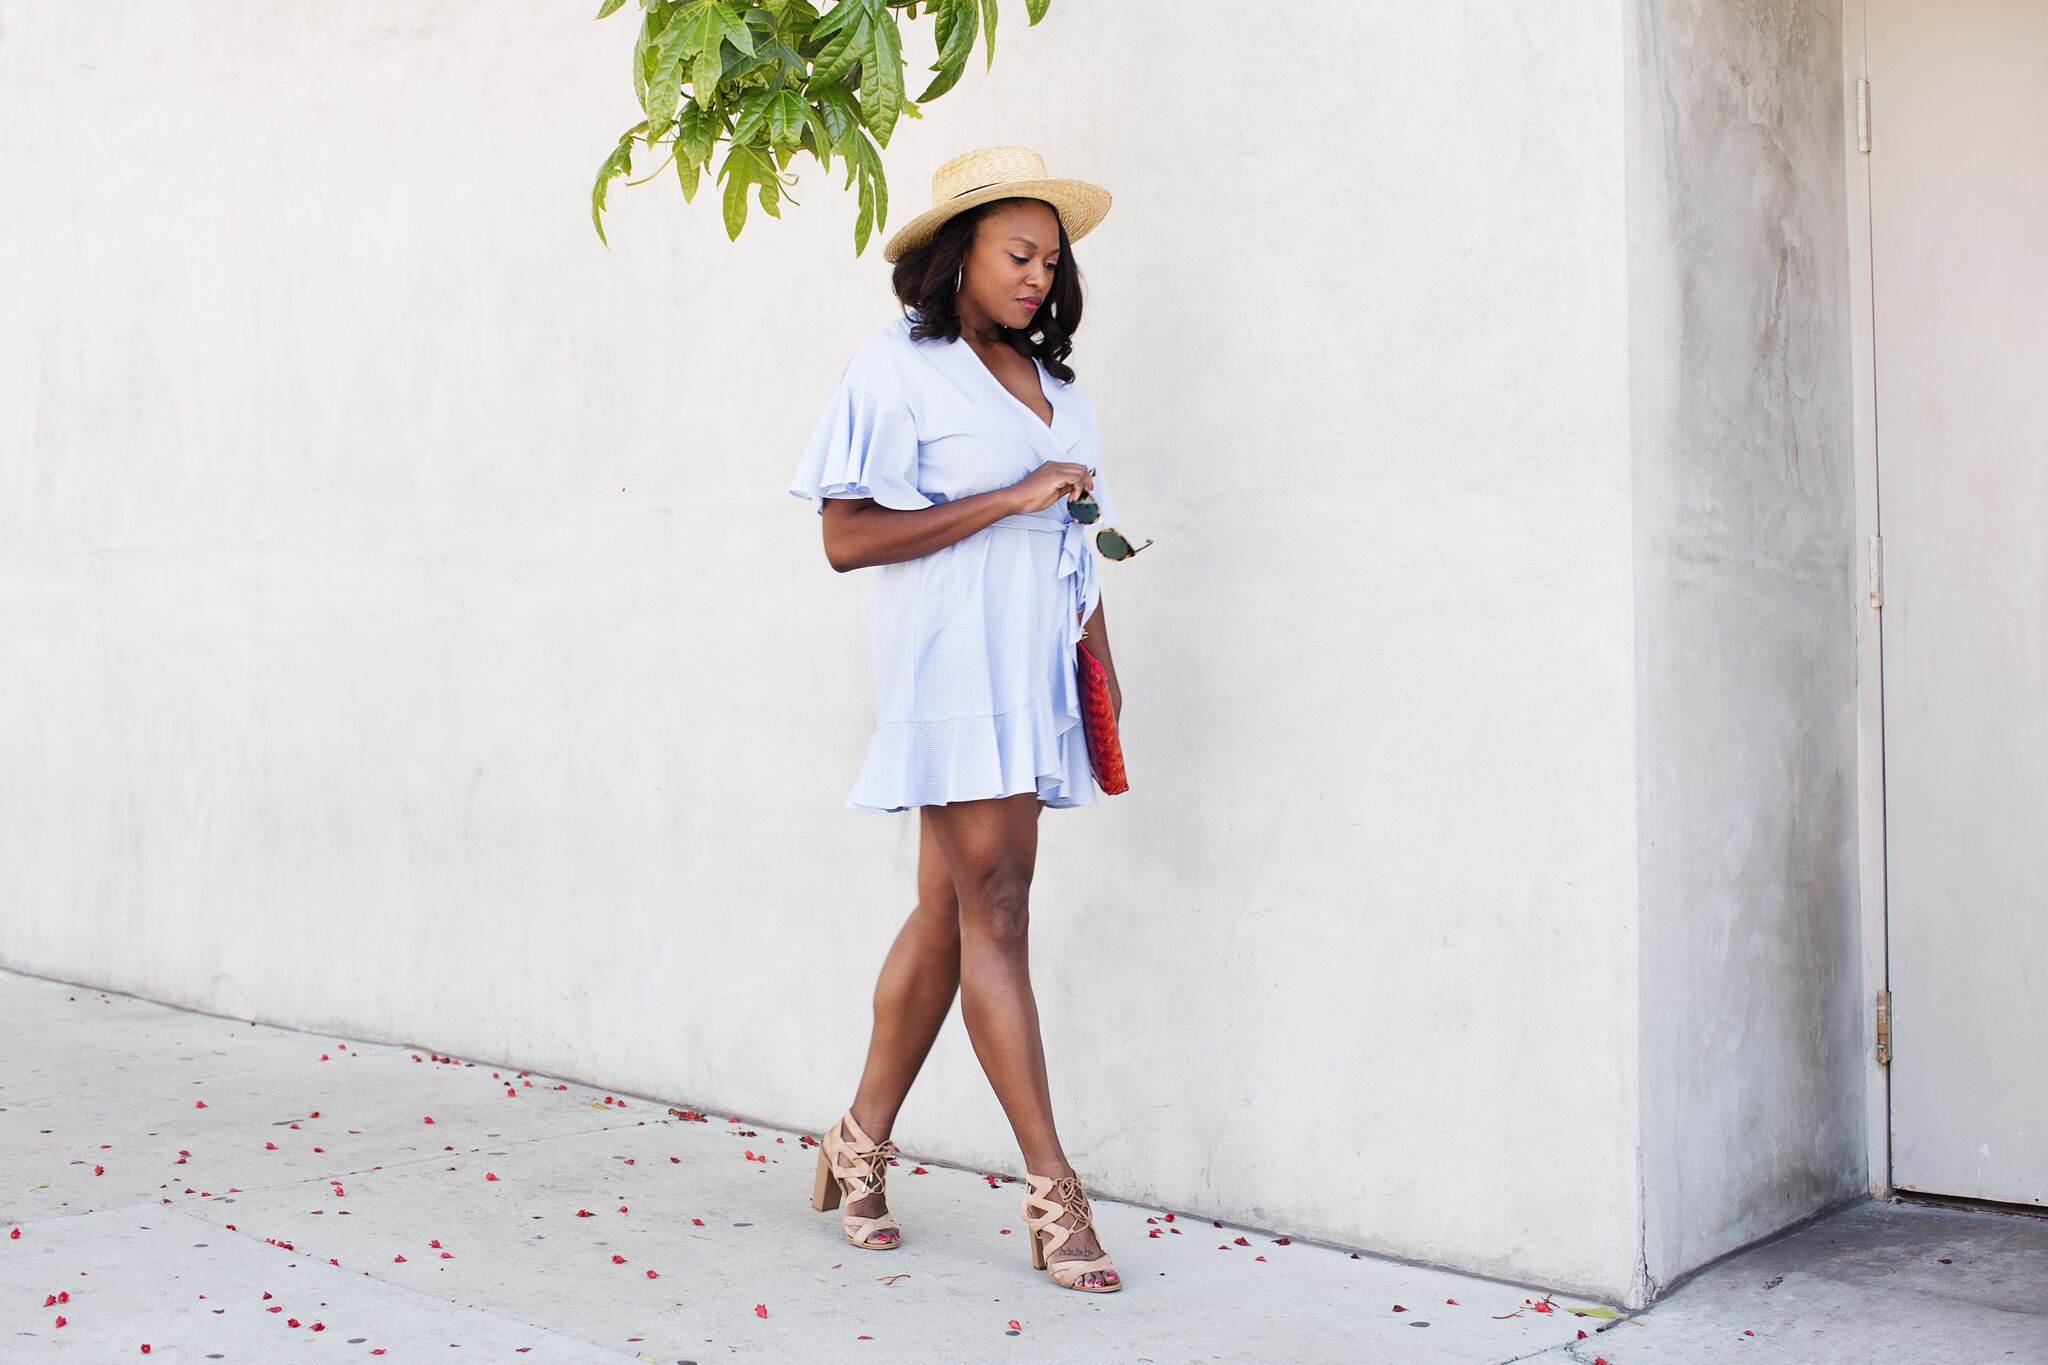 topshop-summer-wrap-dress-melissa-chataigne-style-blogger-klint-hat-1